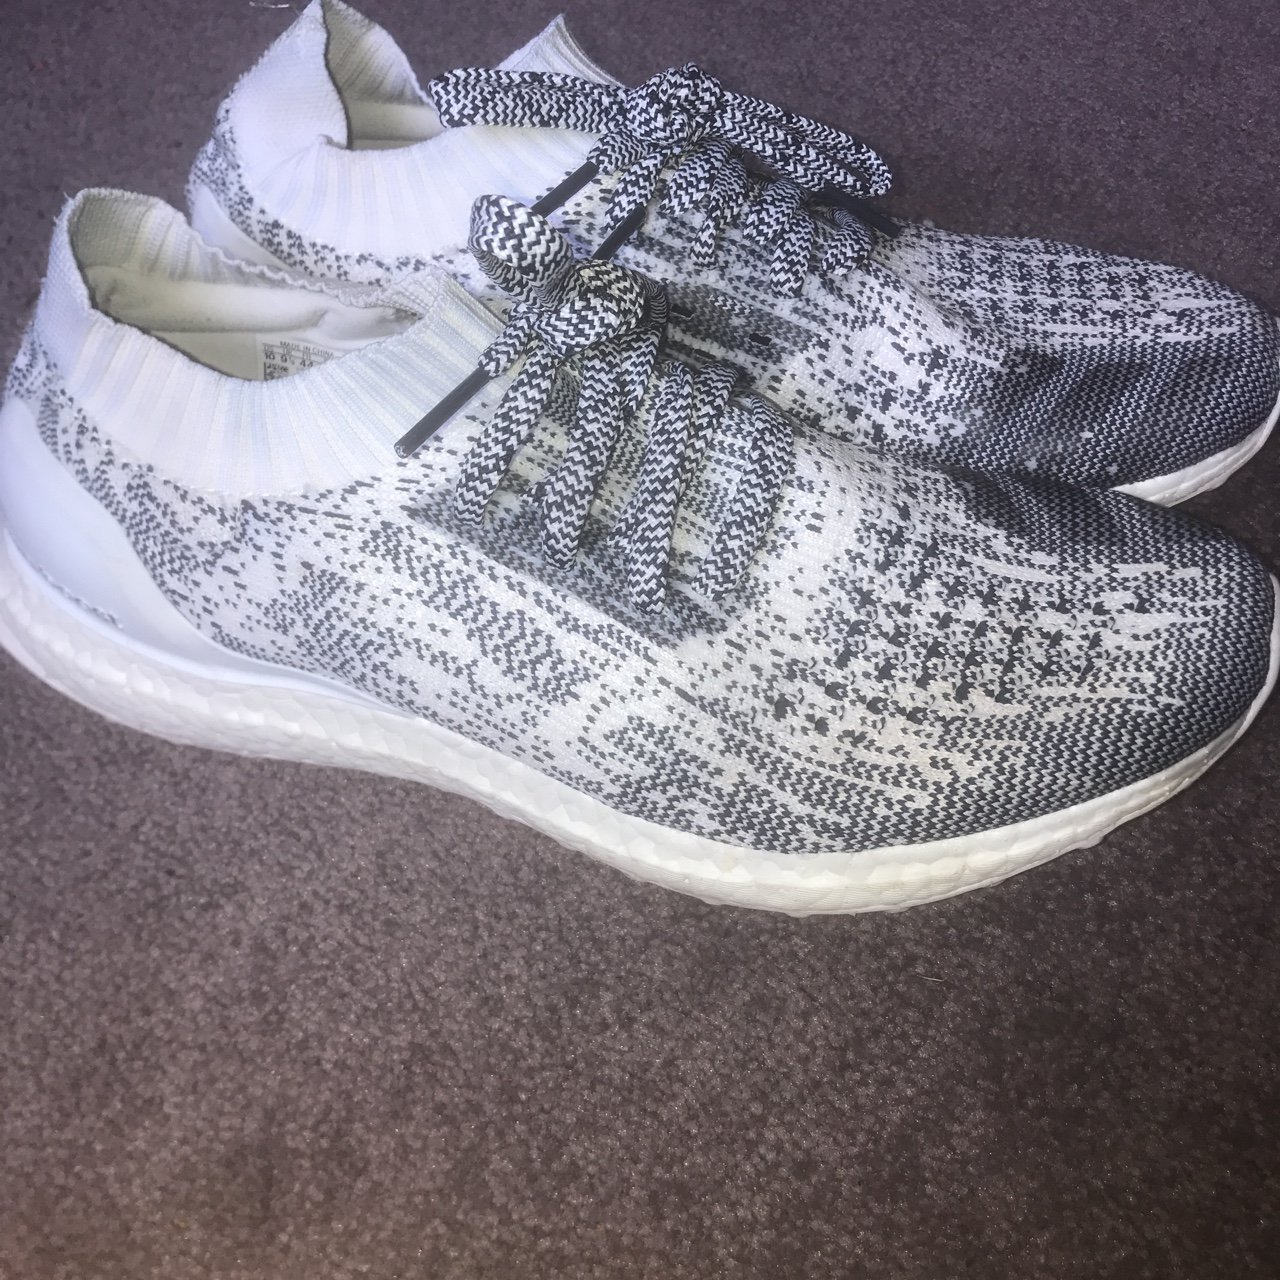 4b5192d4551 Adidas ultra boost uncaged size 9.5 but could fit a 9. 9 10 - Depop